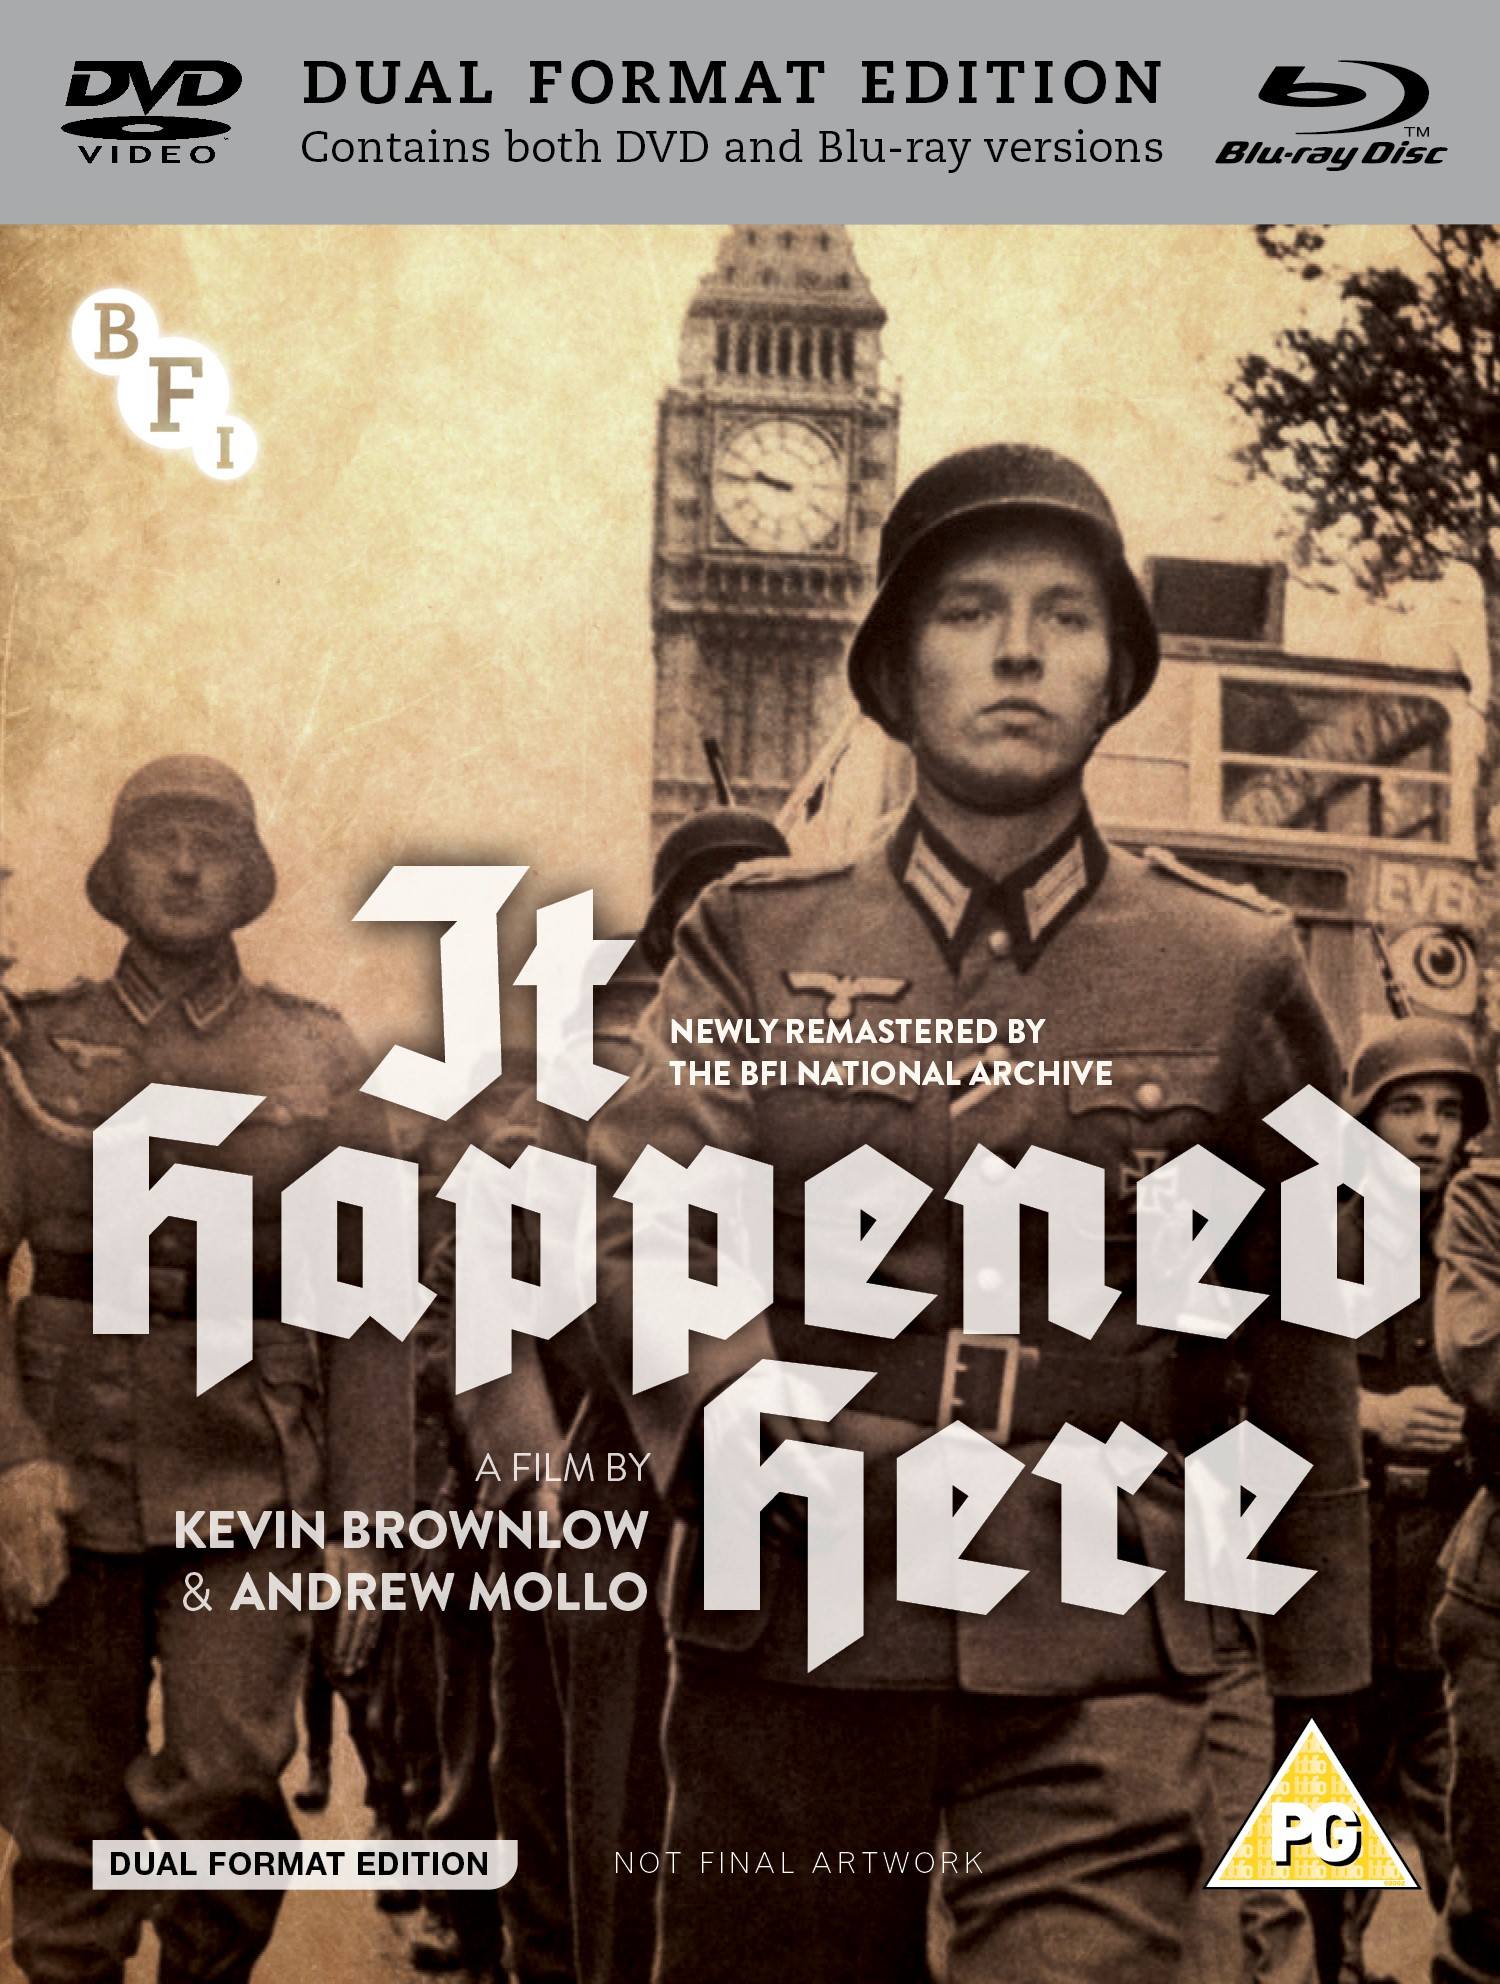 Buy PRE-ORDER It Happened Here (Dual Format Edition)